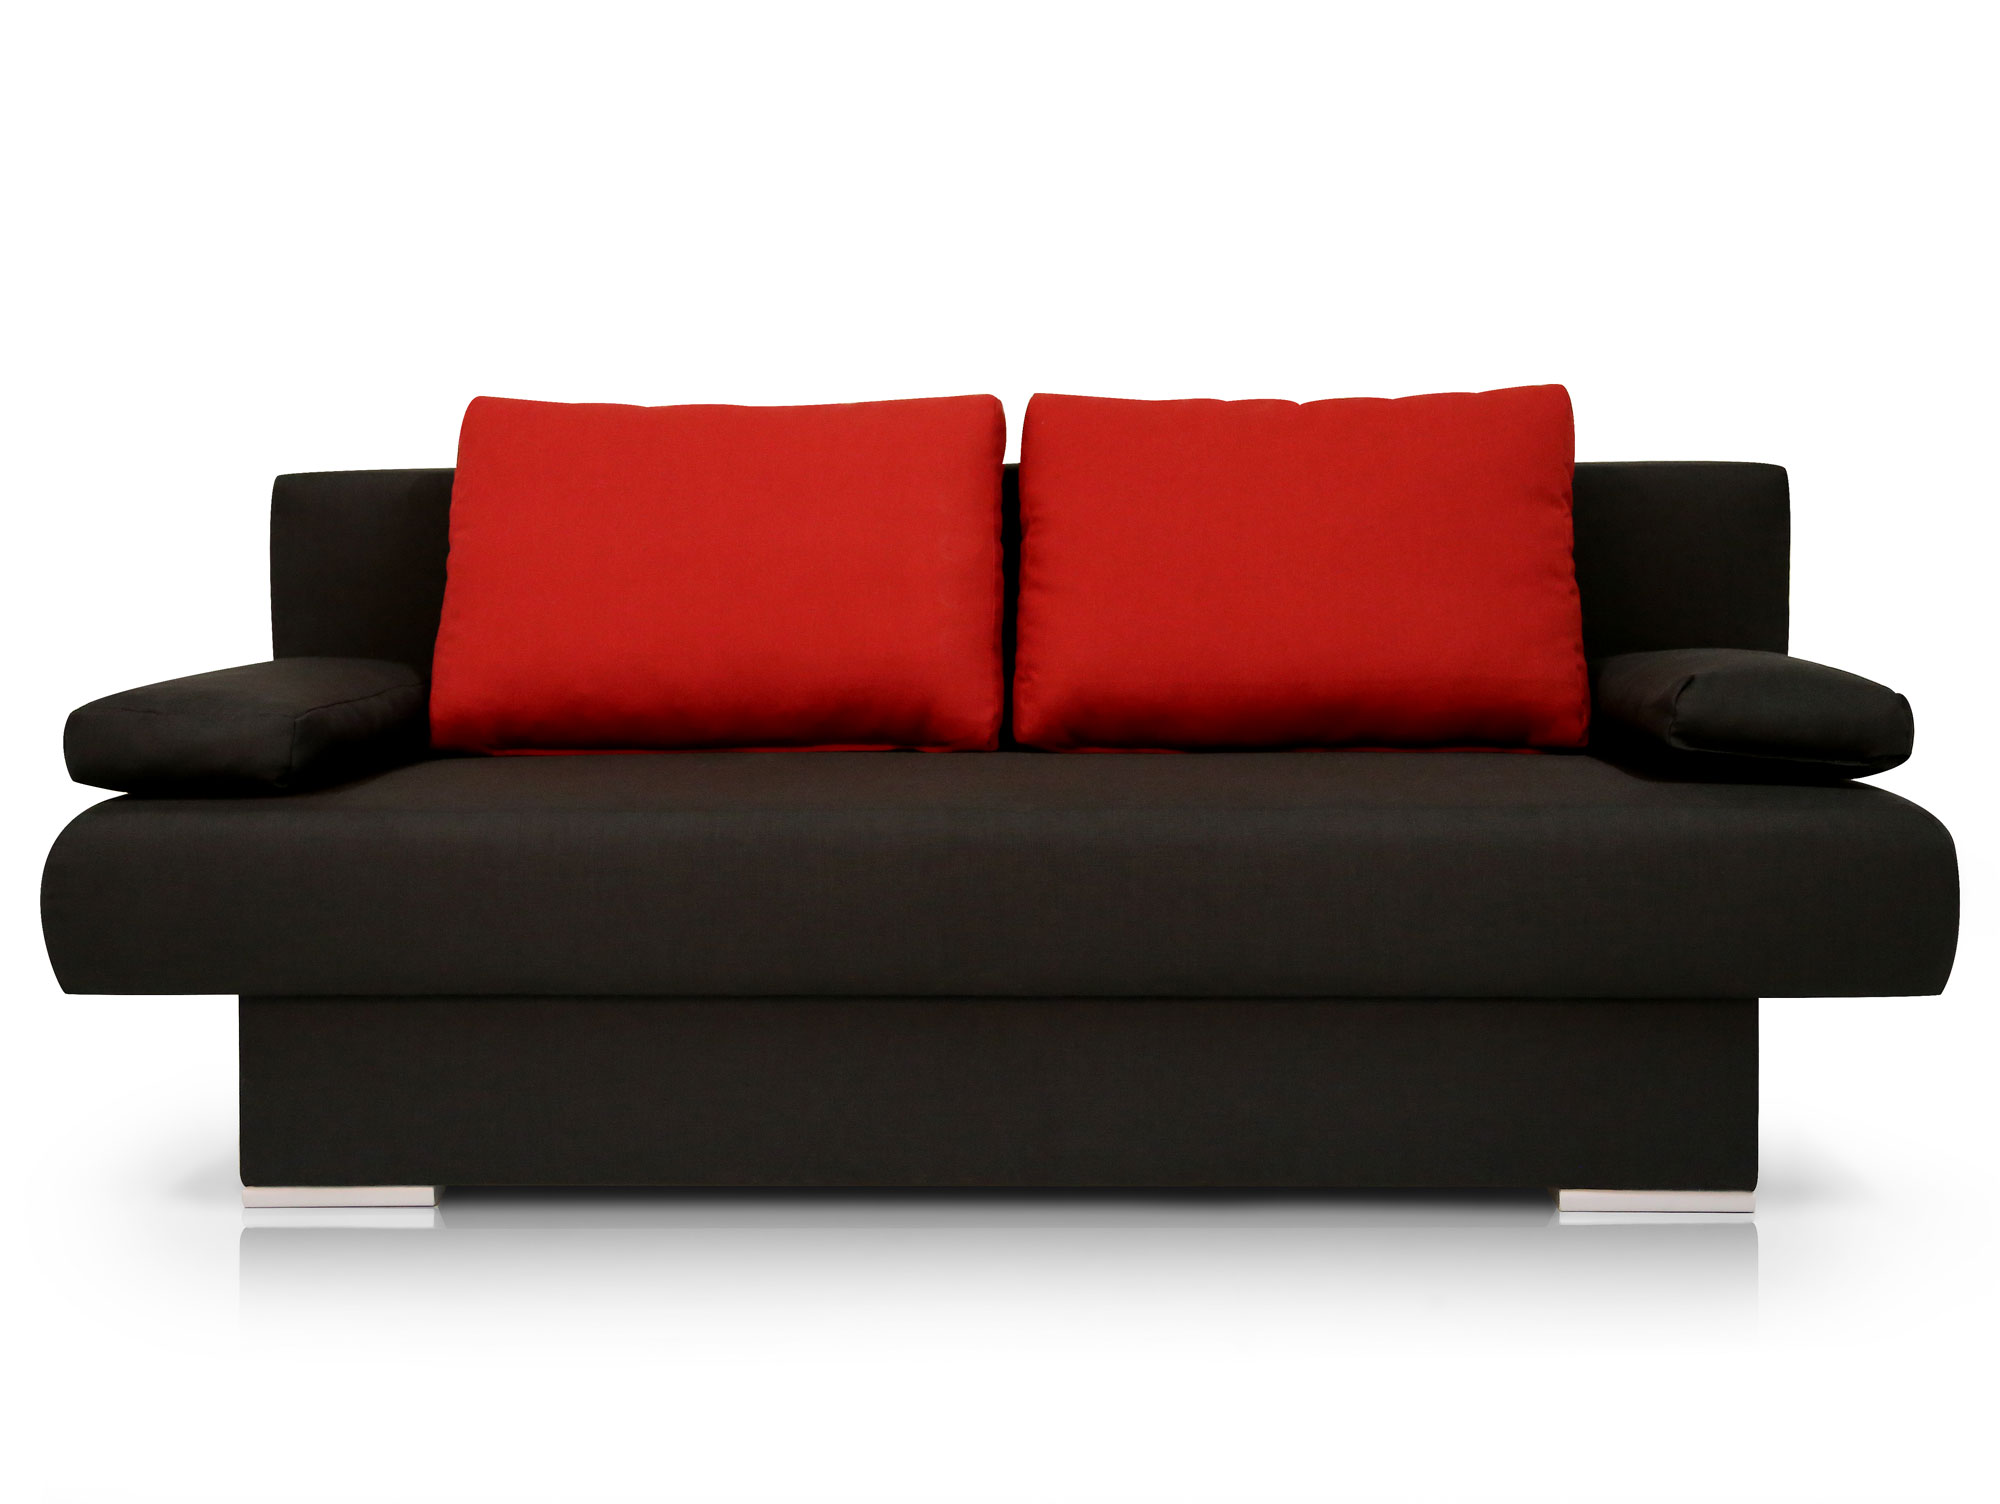 schlafcouch mit bettkasten g nstig kaufen. Black Bedroom Furniture Sets. Home Design Ideas